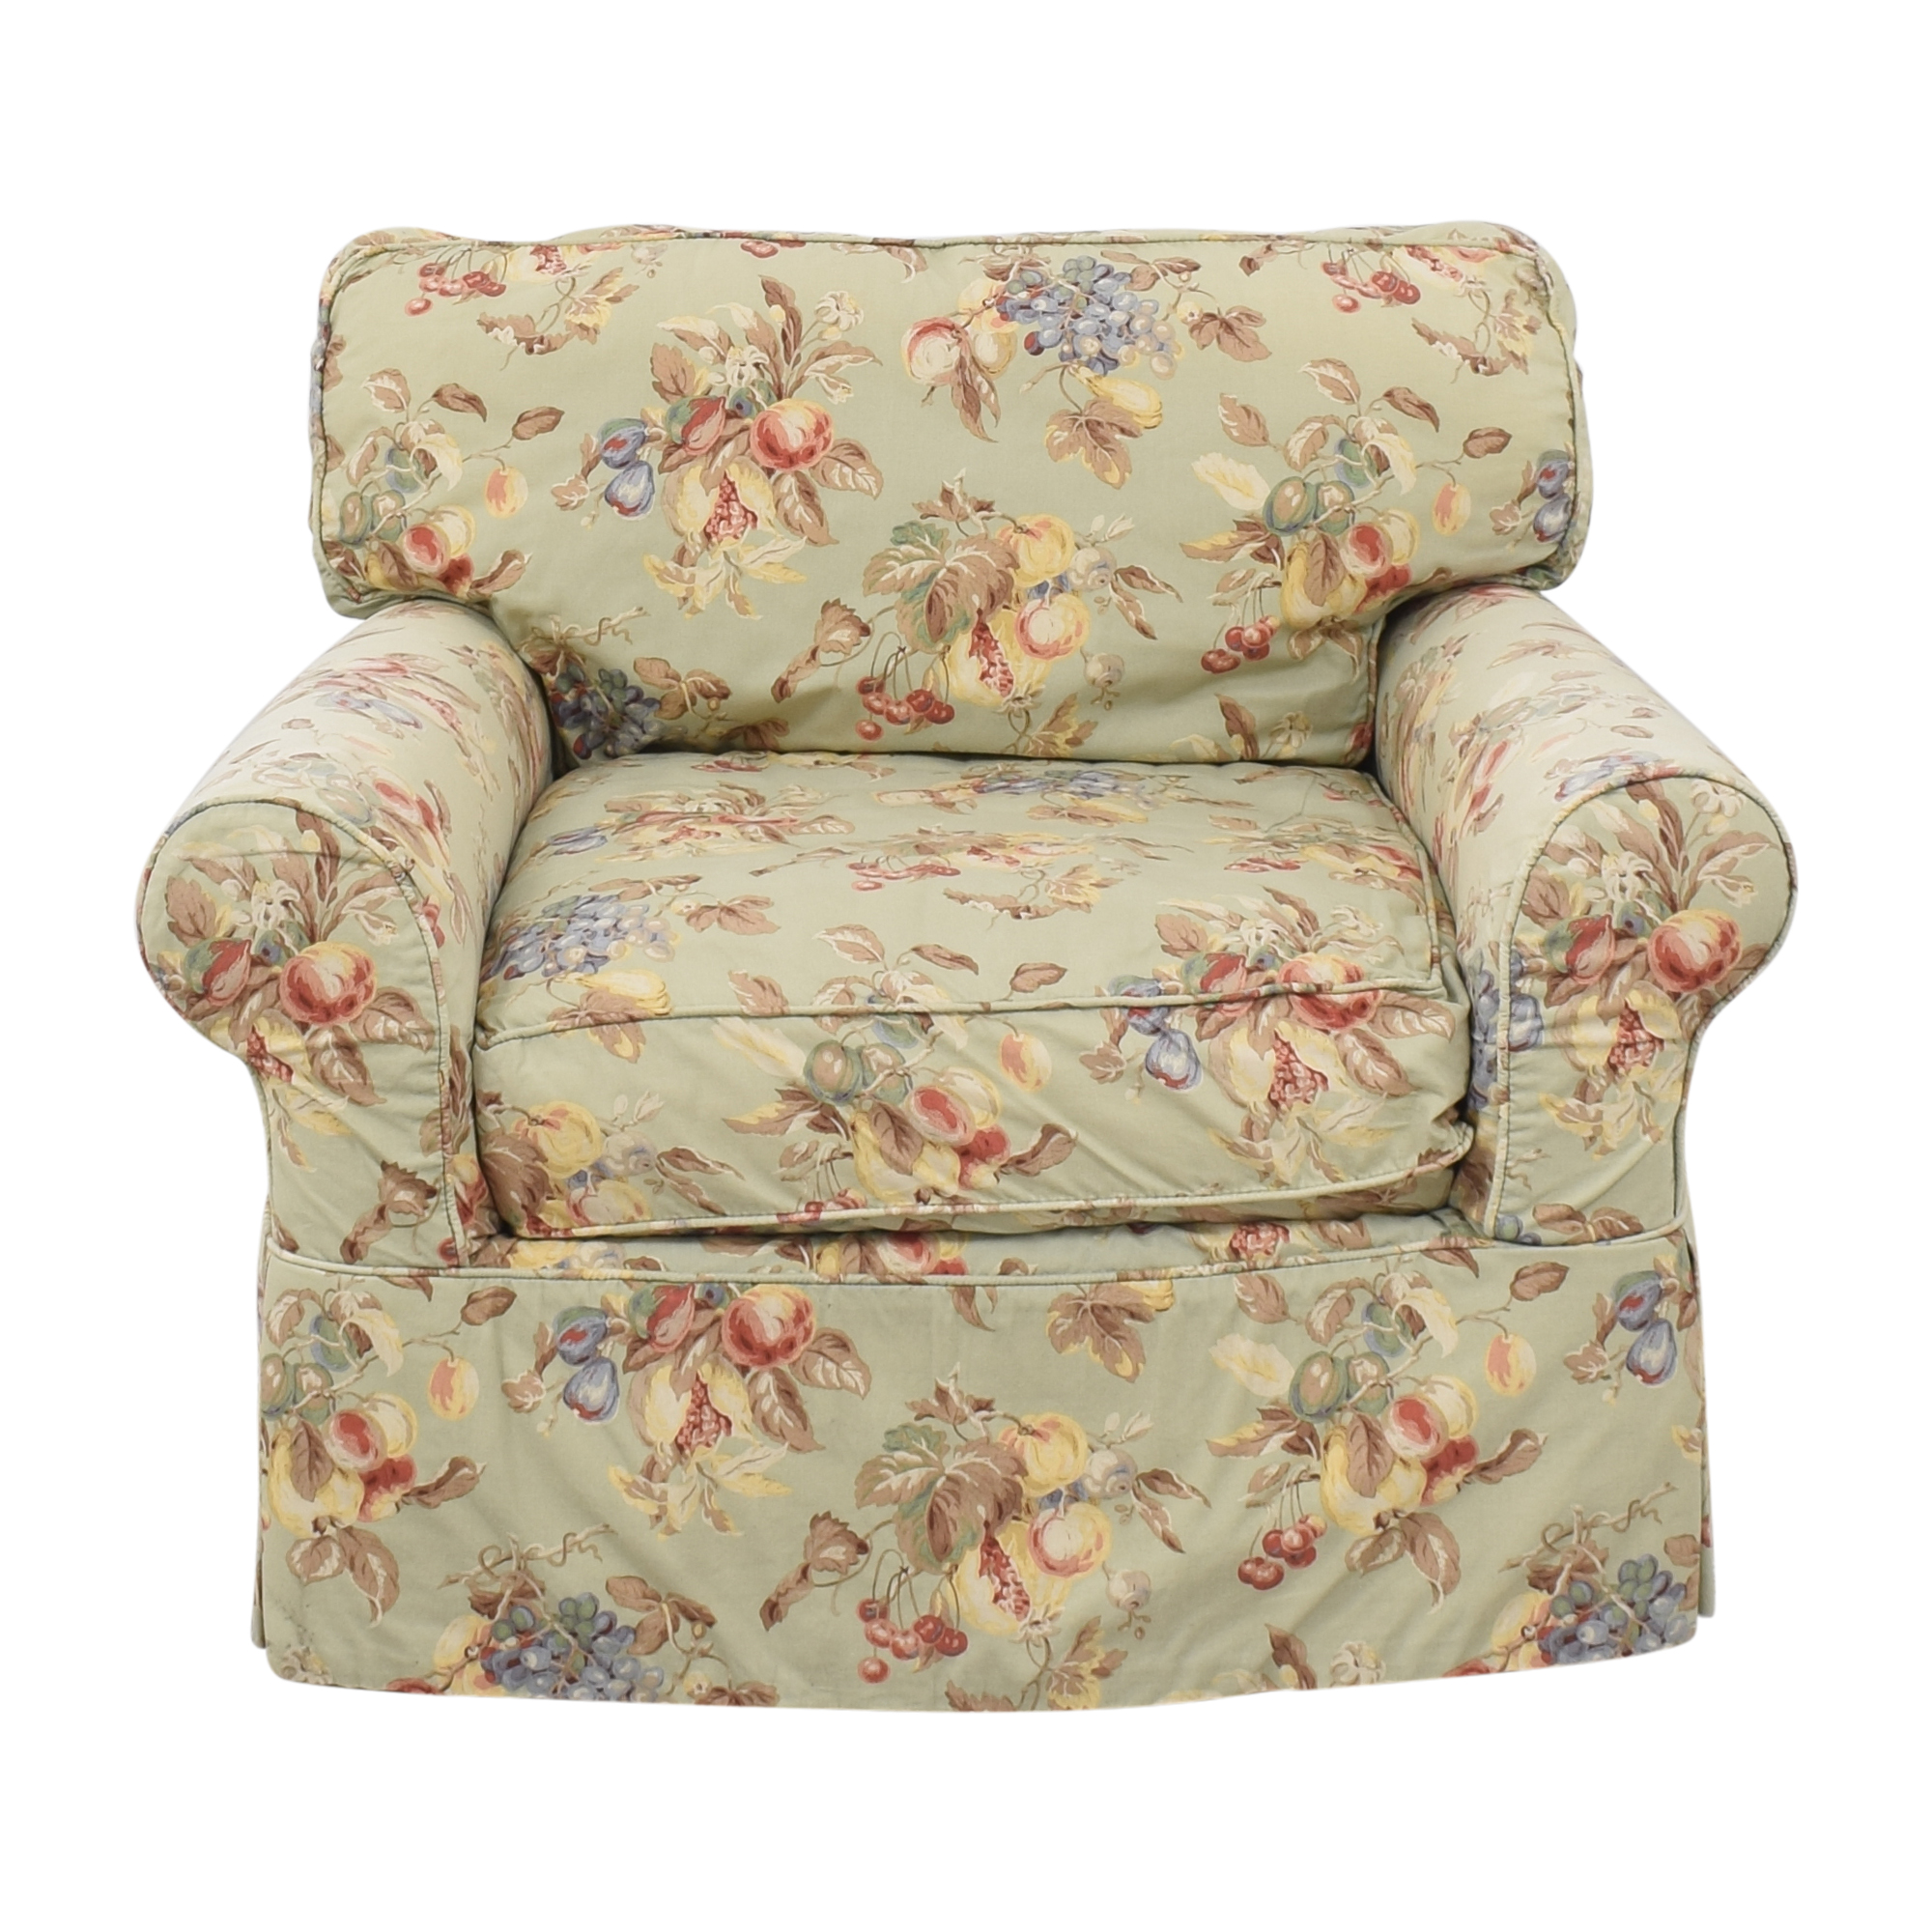 Crate & Barrel Crate & Barrel Floral Slipcovered Chair on sale